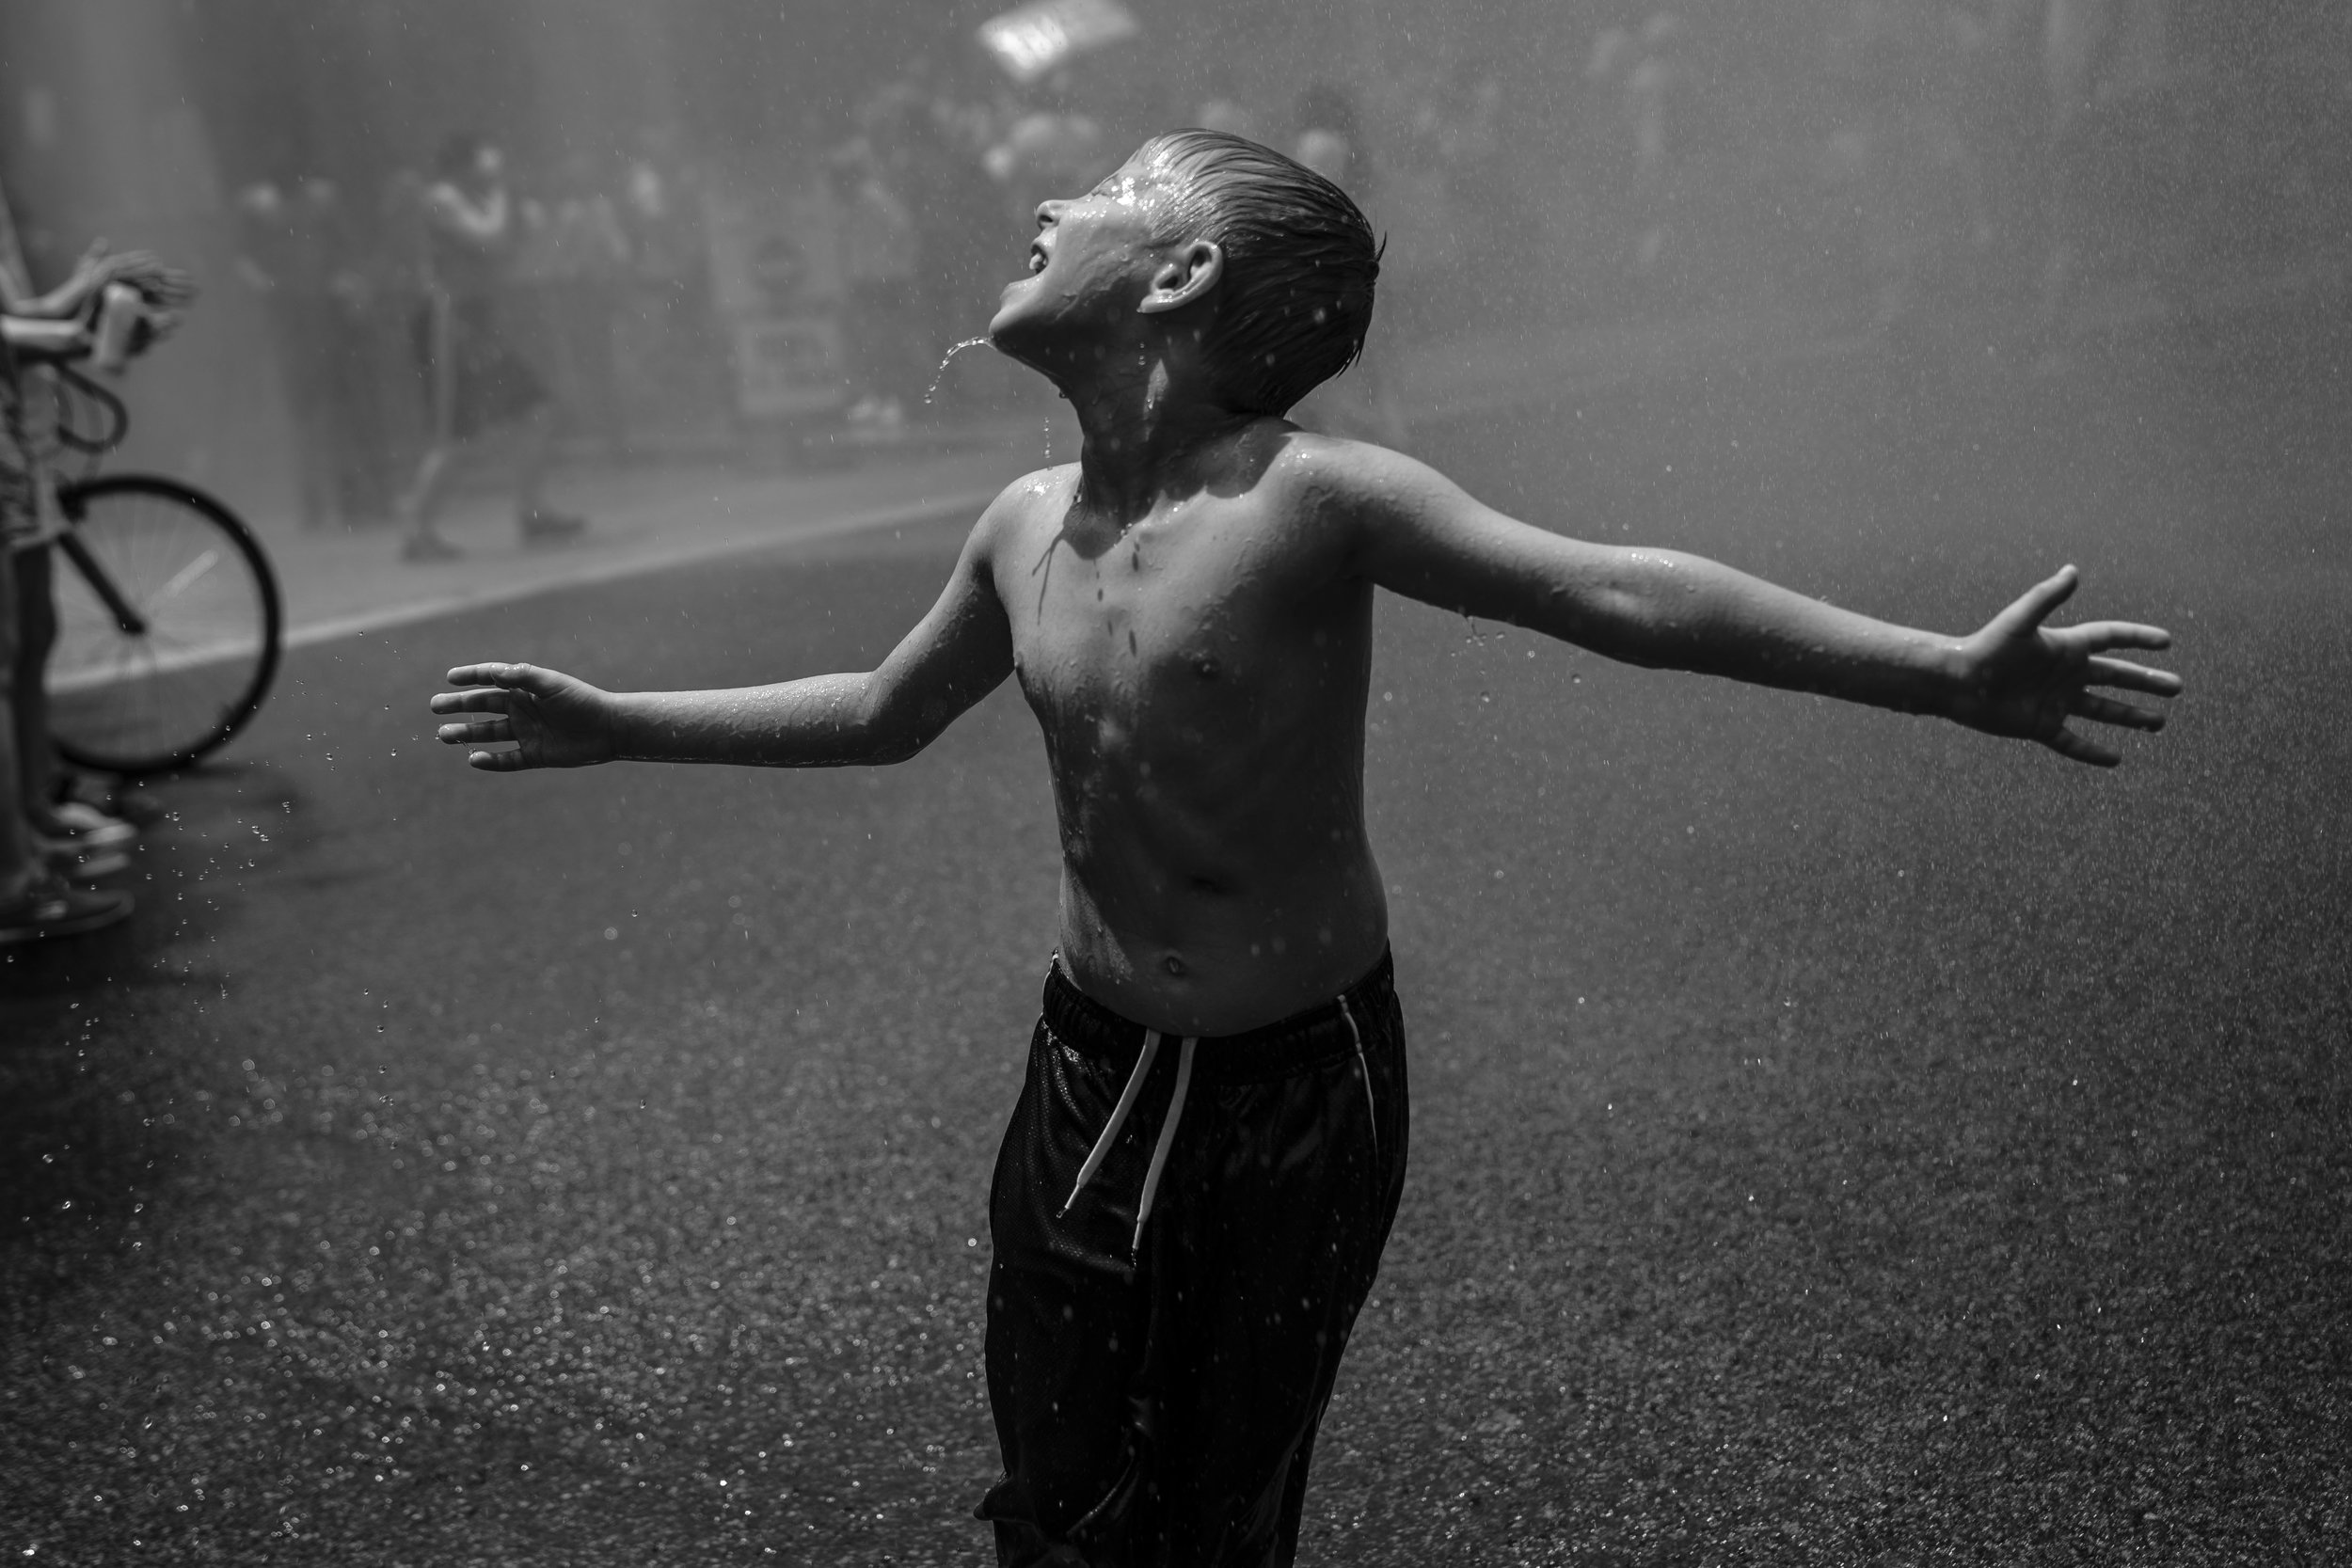 A boy cools off in water sprayed from a fire truck during a protest against the Trump administration's policy on separating immigrant families.